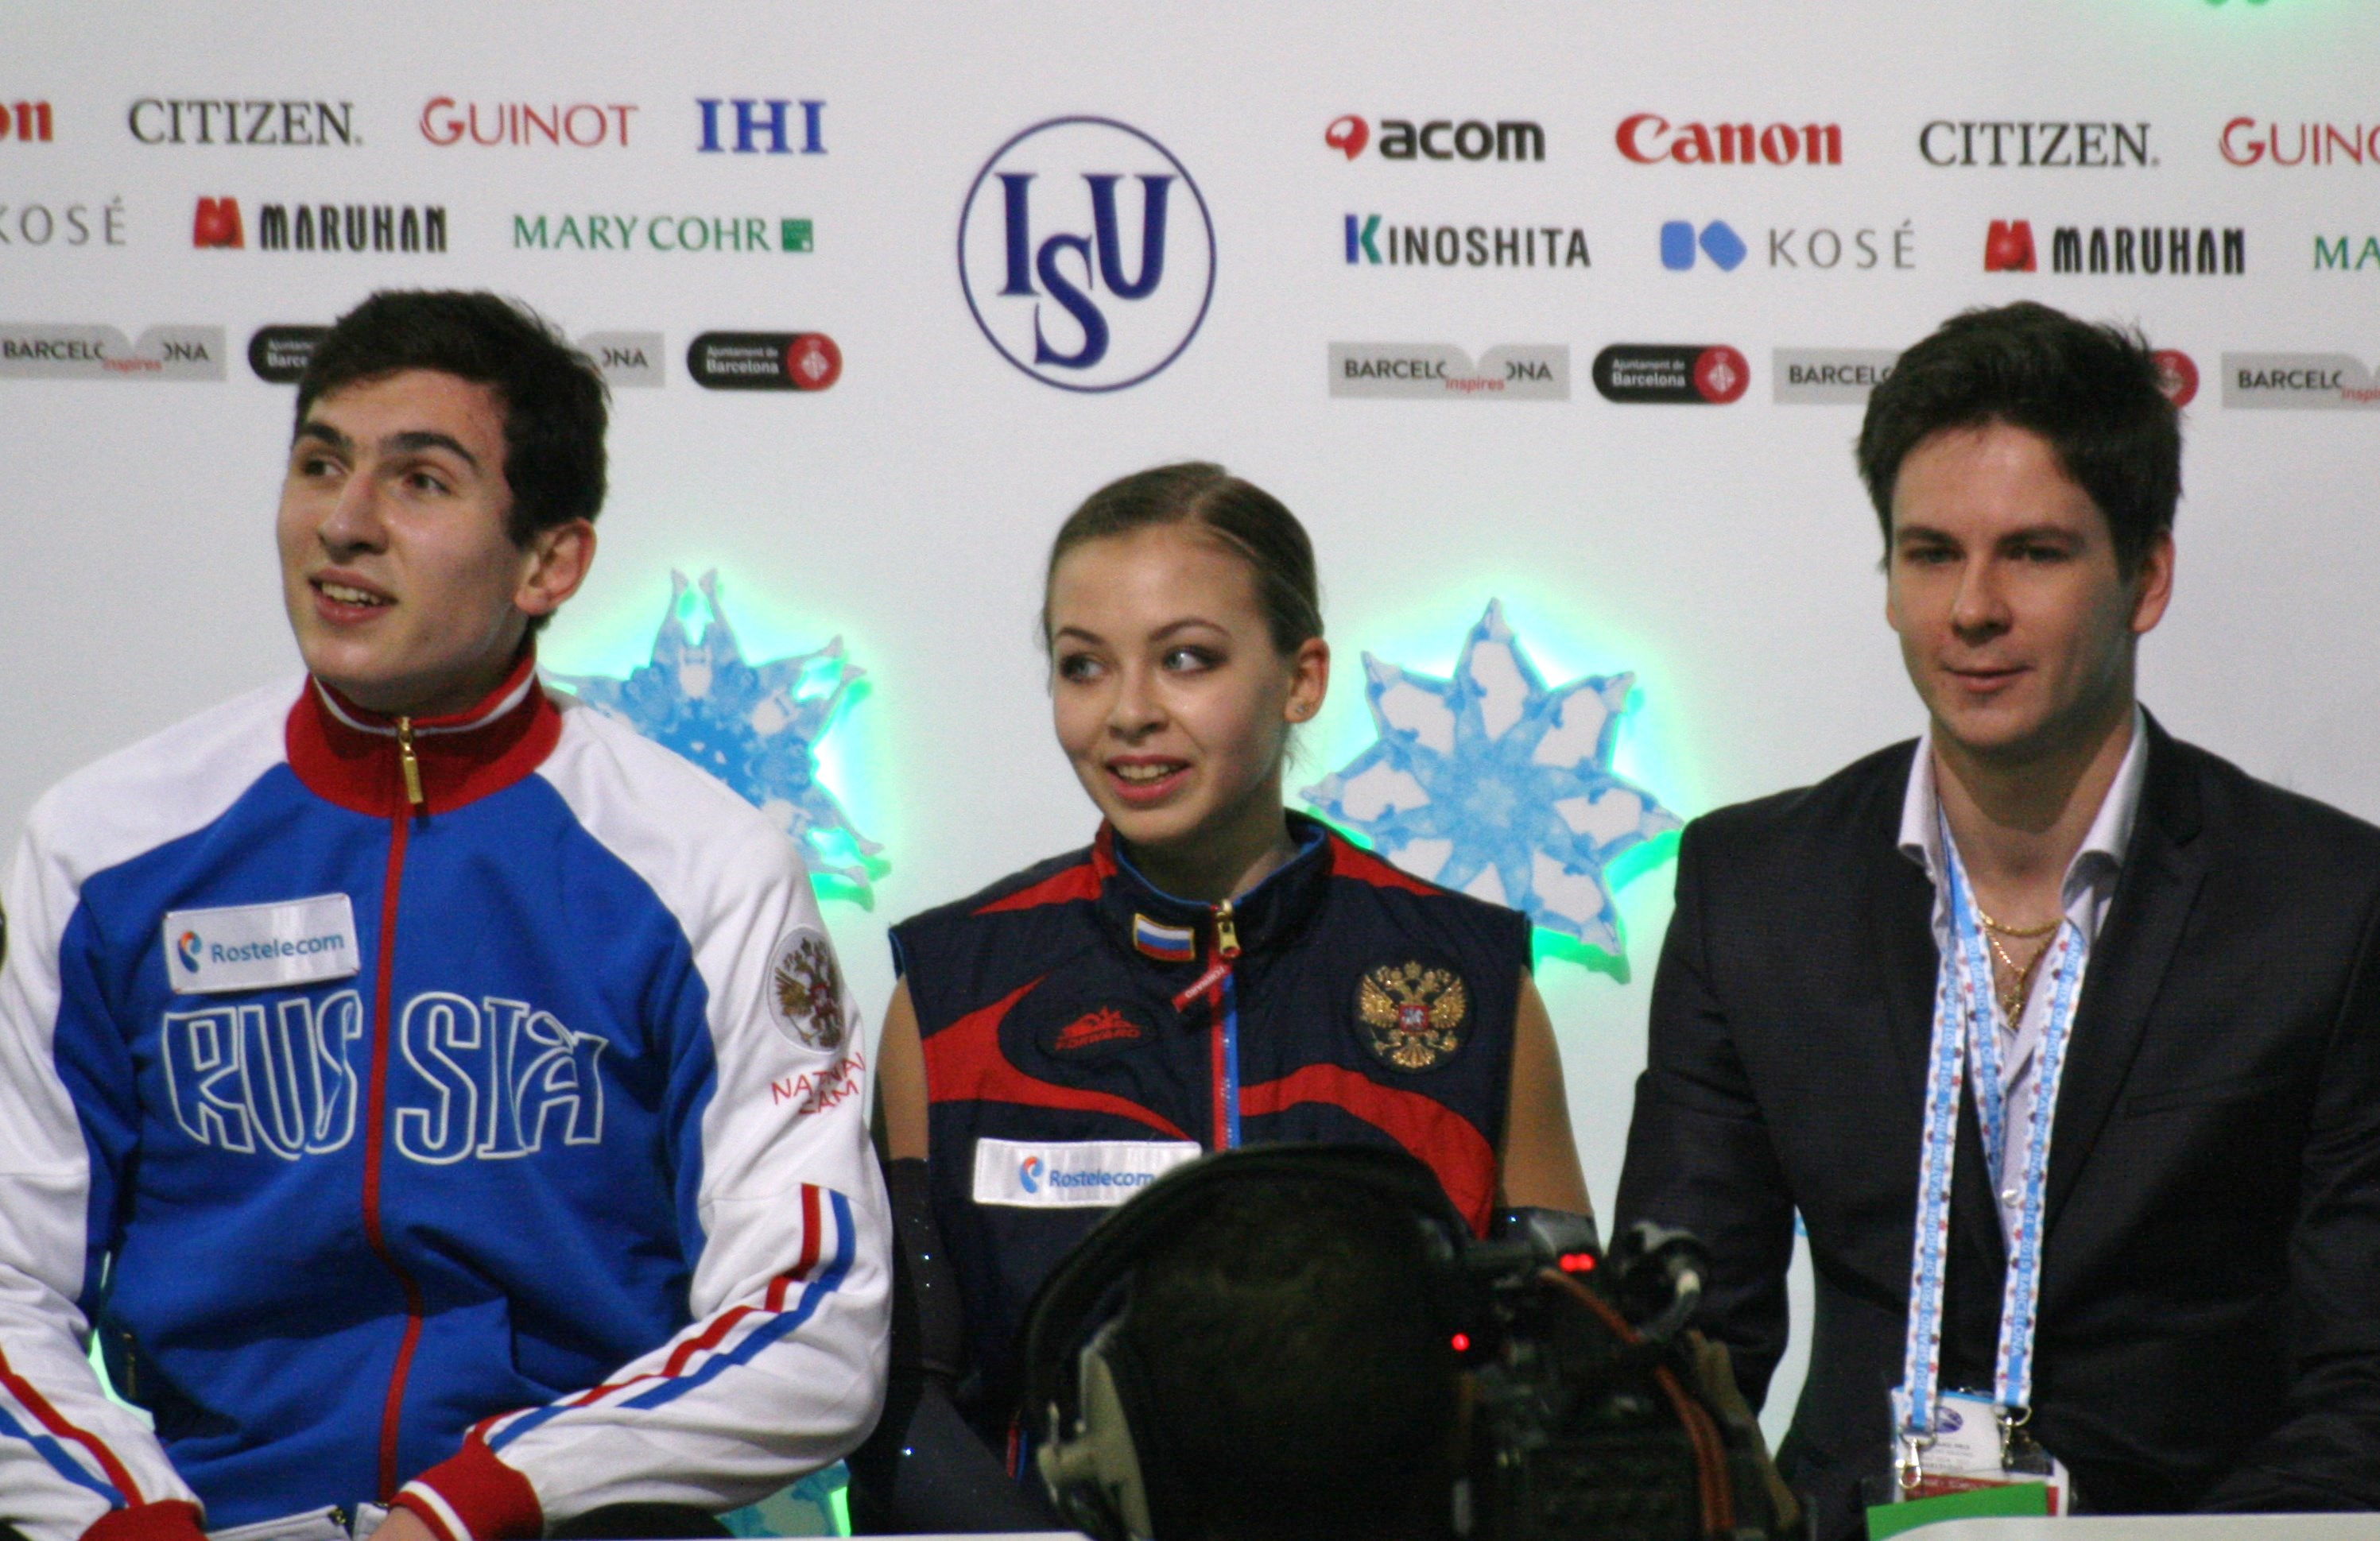 Figure skater Catherine Bobrov was not allowed in the United States because of doping 07.03.2016 69